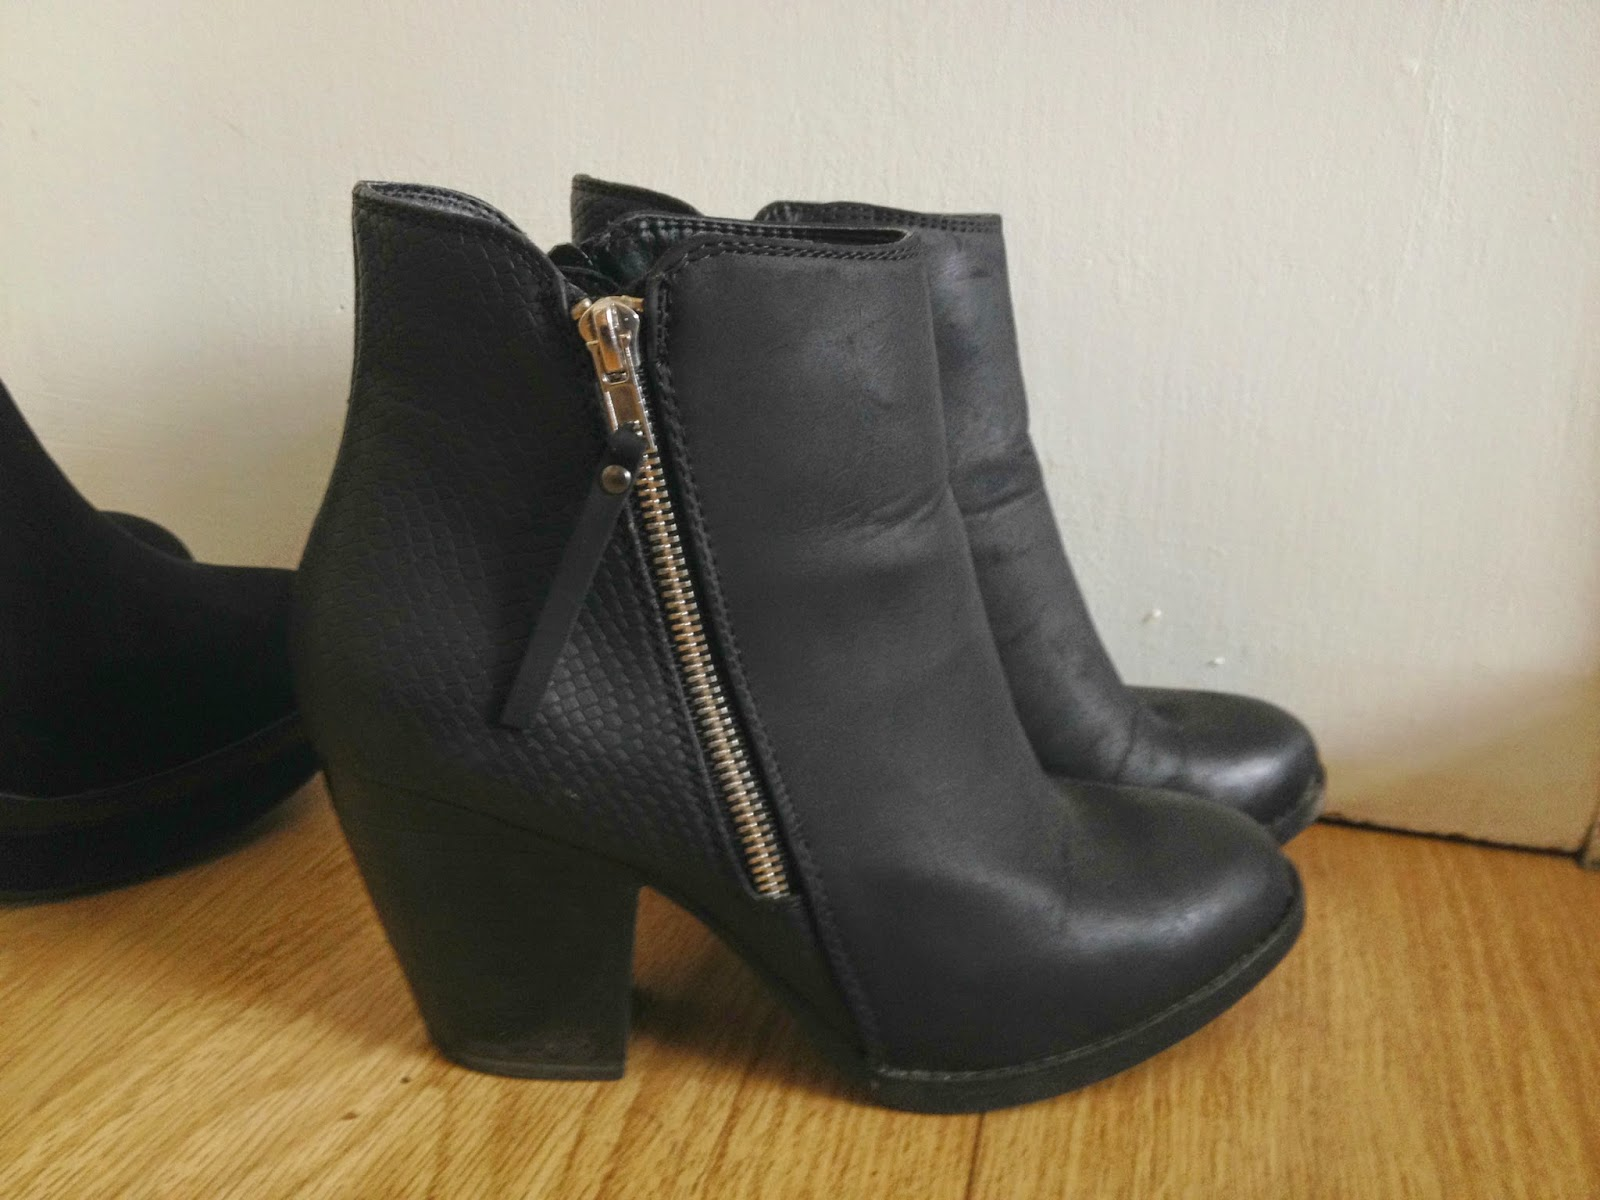 Primark Snakeskin Leather Autumn Winter Heeled Boots